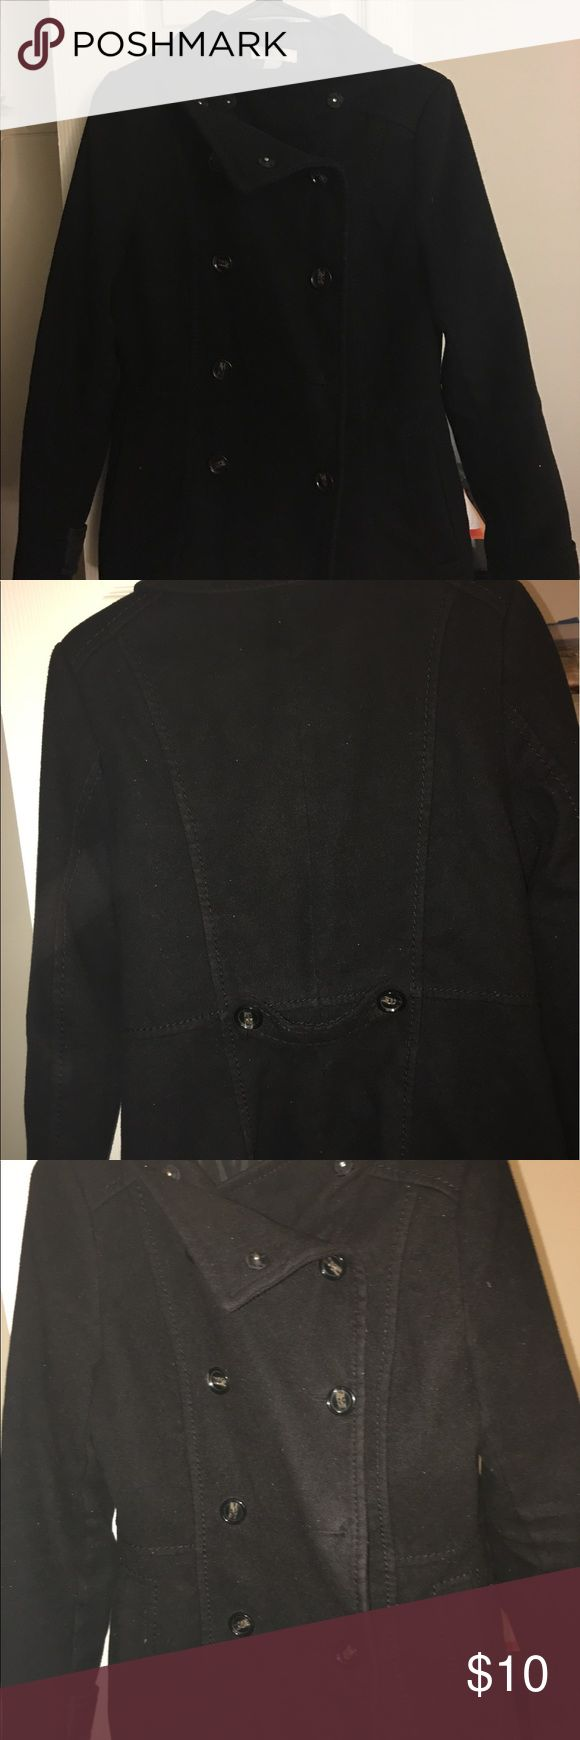 Black pea coat Double breasted  peacoat from H&M, 3rd button missing color Black. Used still in good condition H&M Jackets & Coats Pea Coats